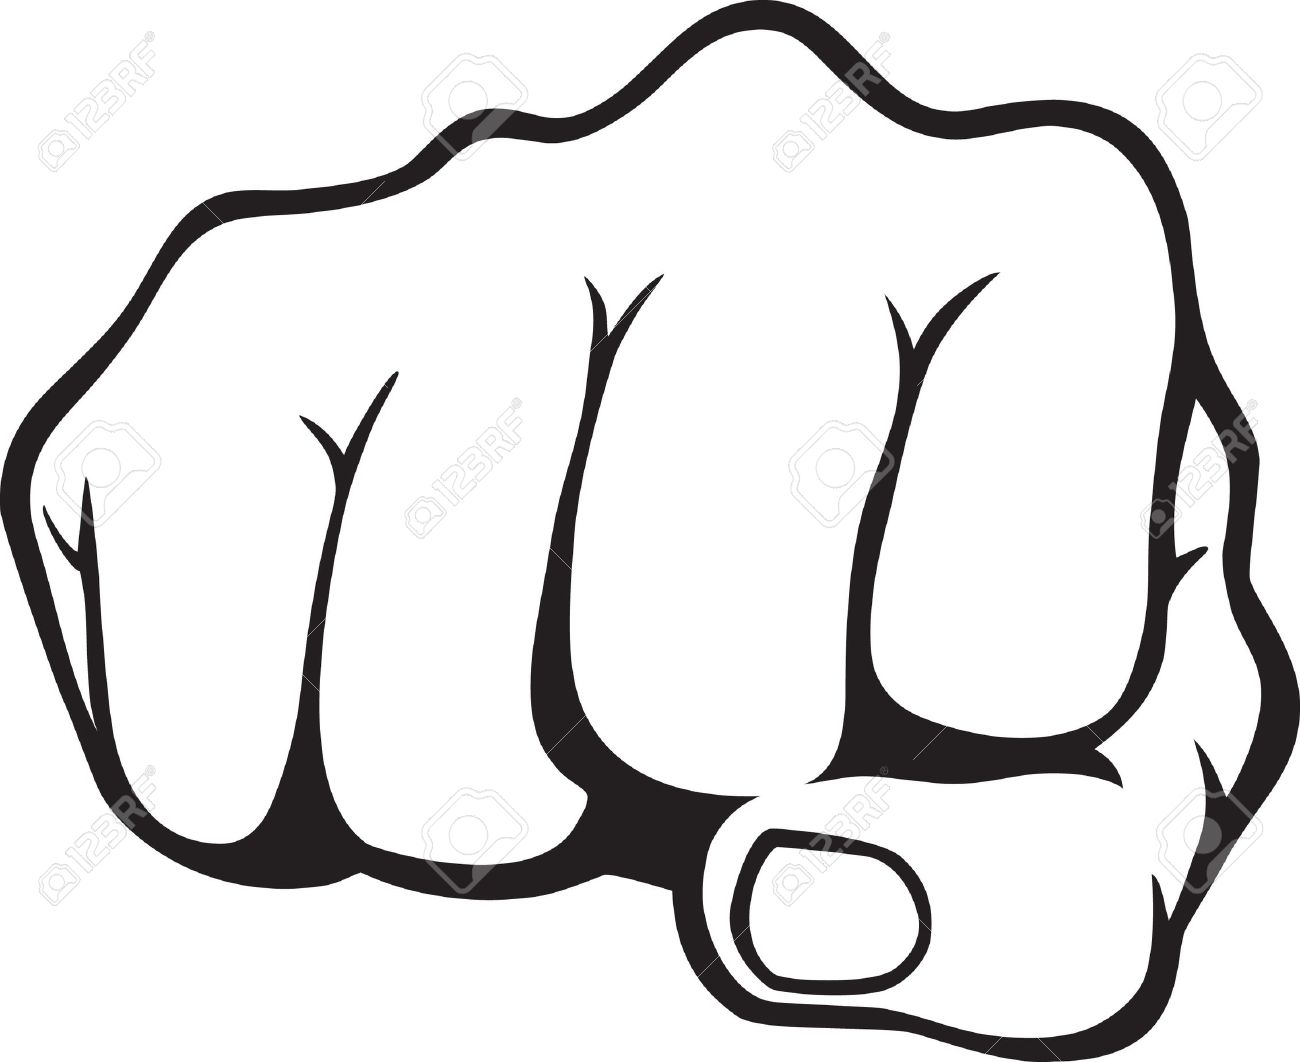 7930609-Fist-Stock-Vector-fist-punch-fre